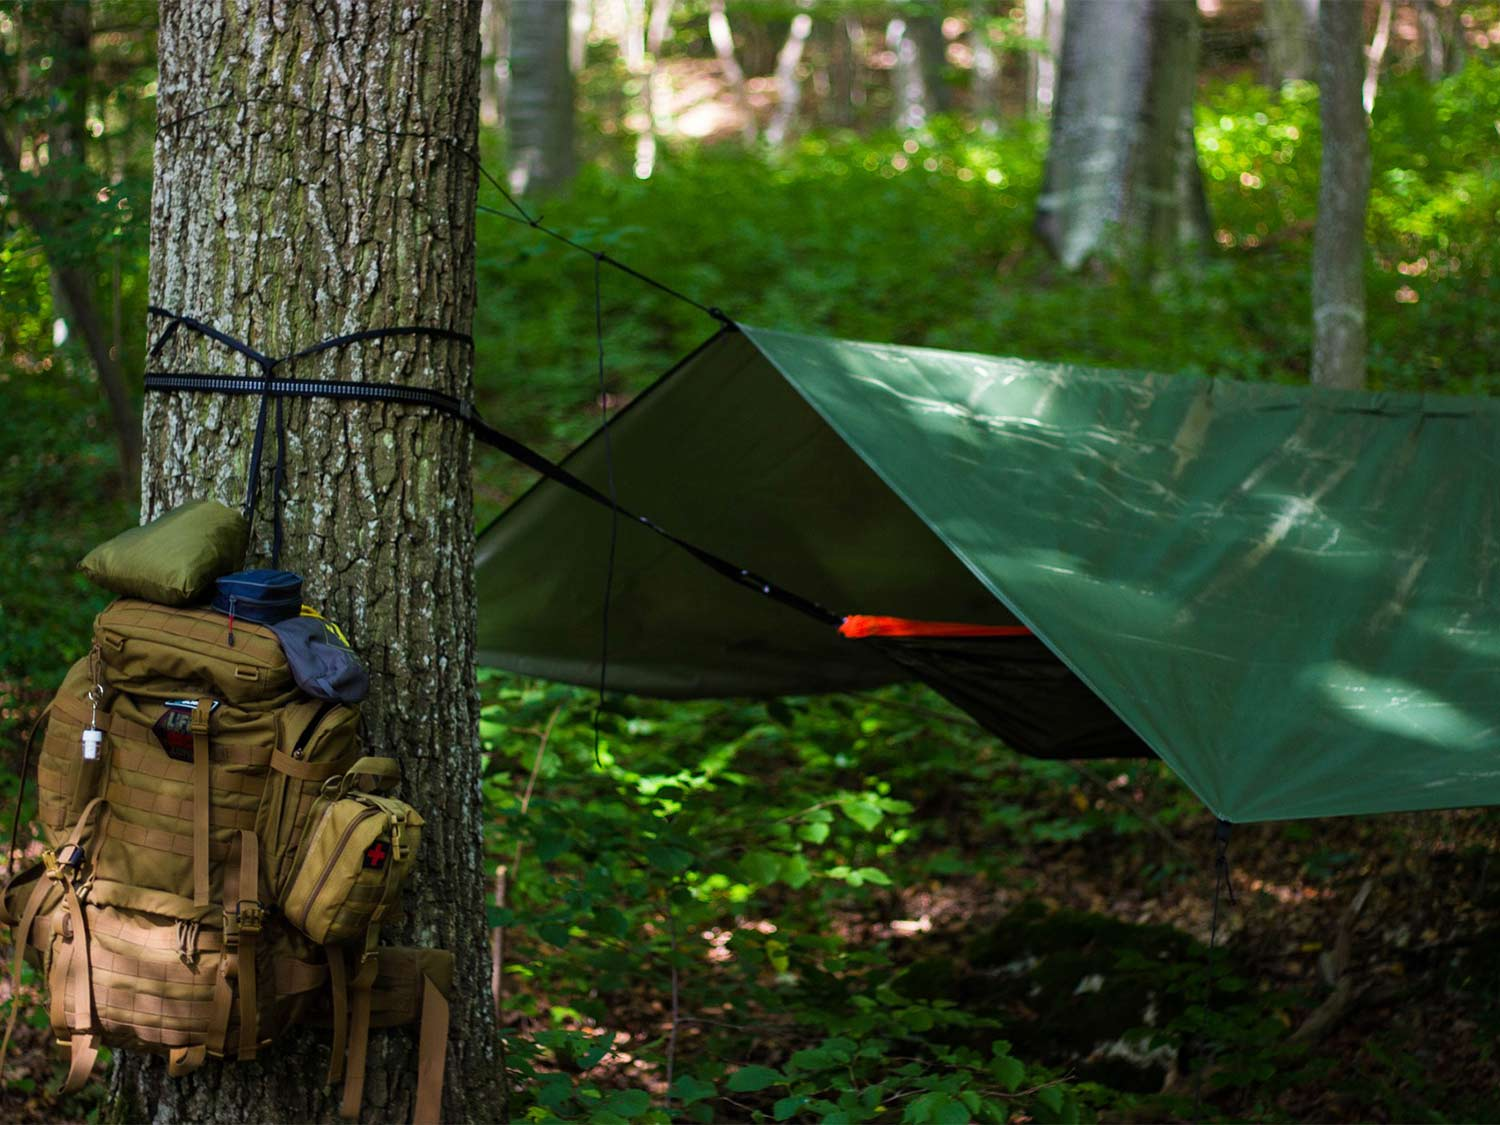 A backpack hanging on a tree and a hammock tarp tied to a tree.